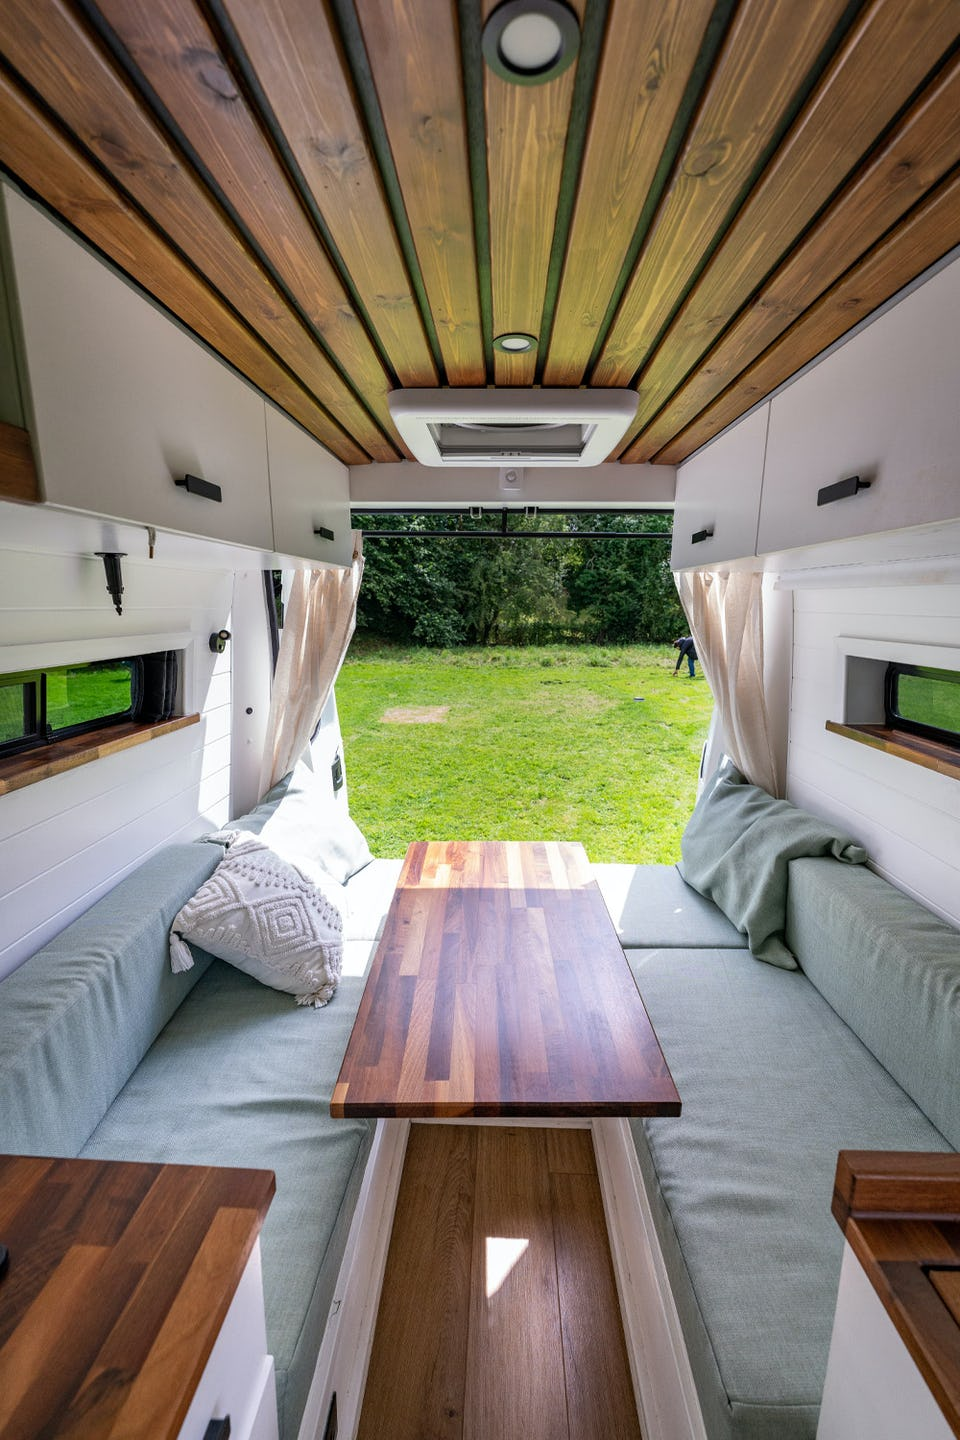 Van conversion with Dinette bed system